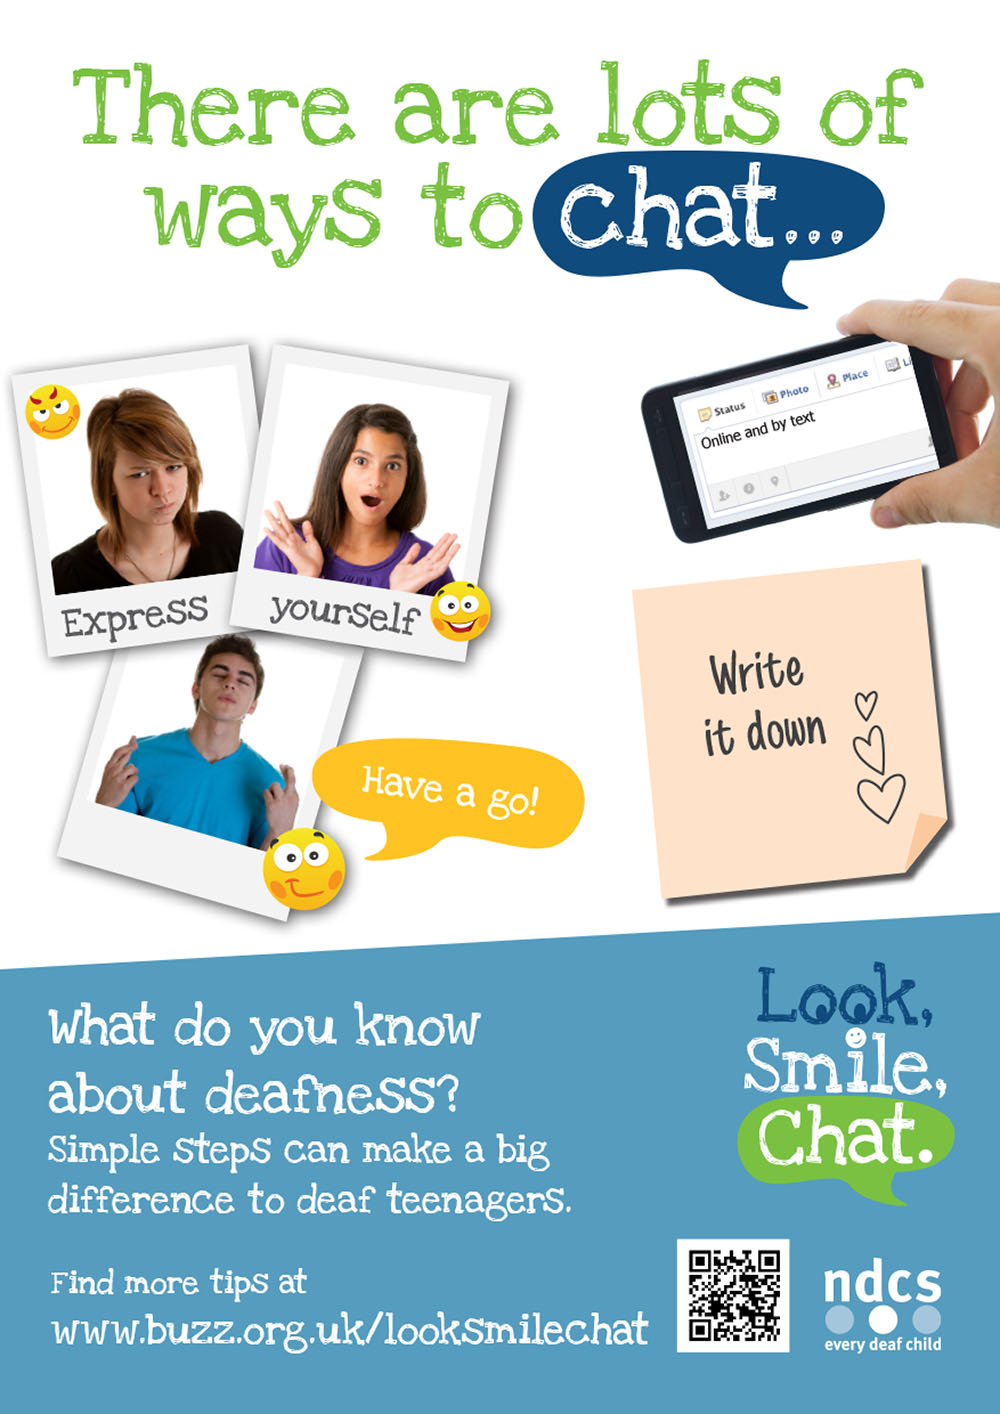 Look Smile Chat Poster - There Are Lots of Ways to Chat